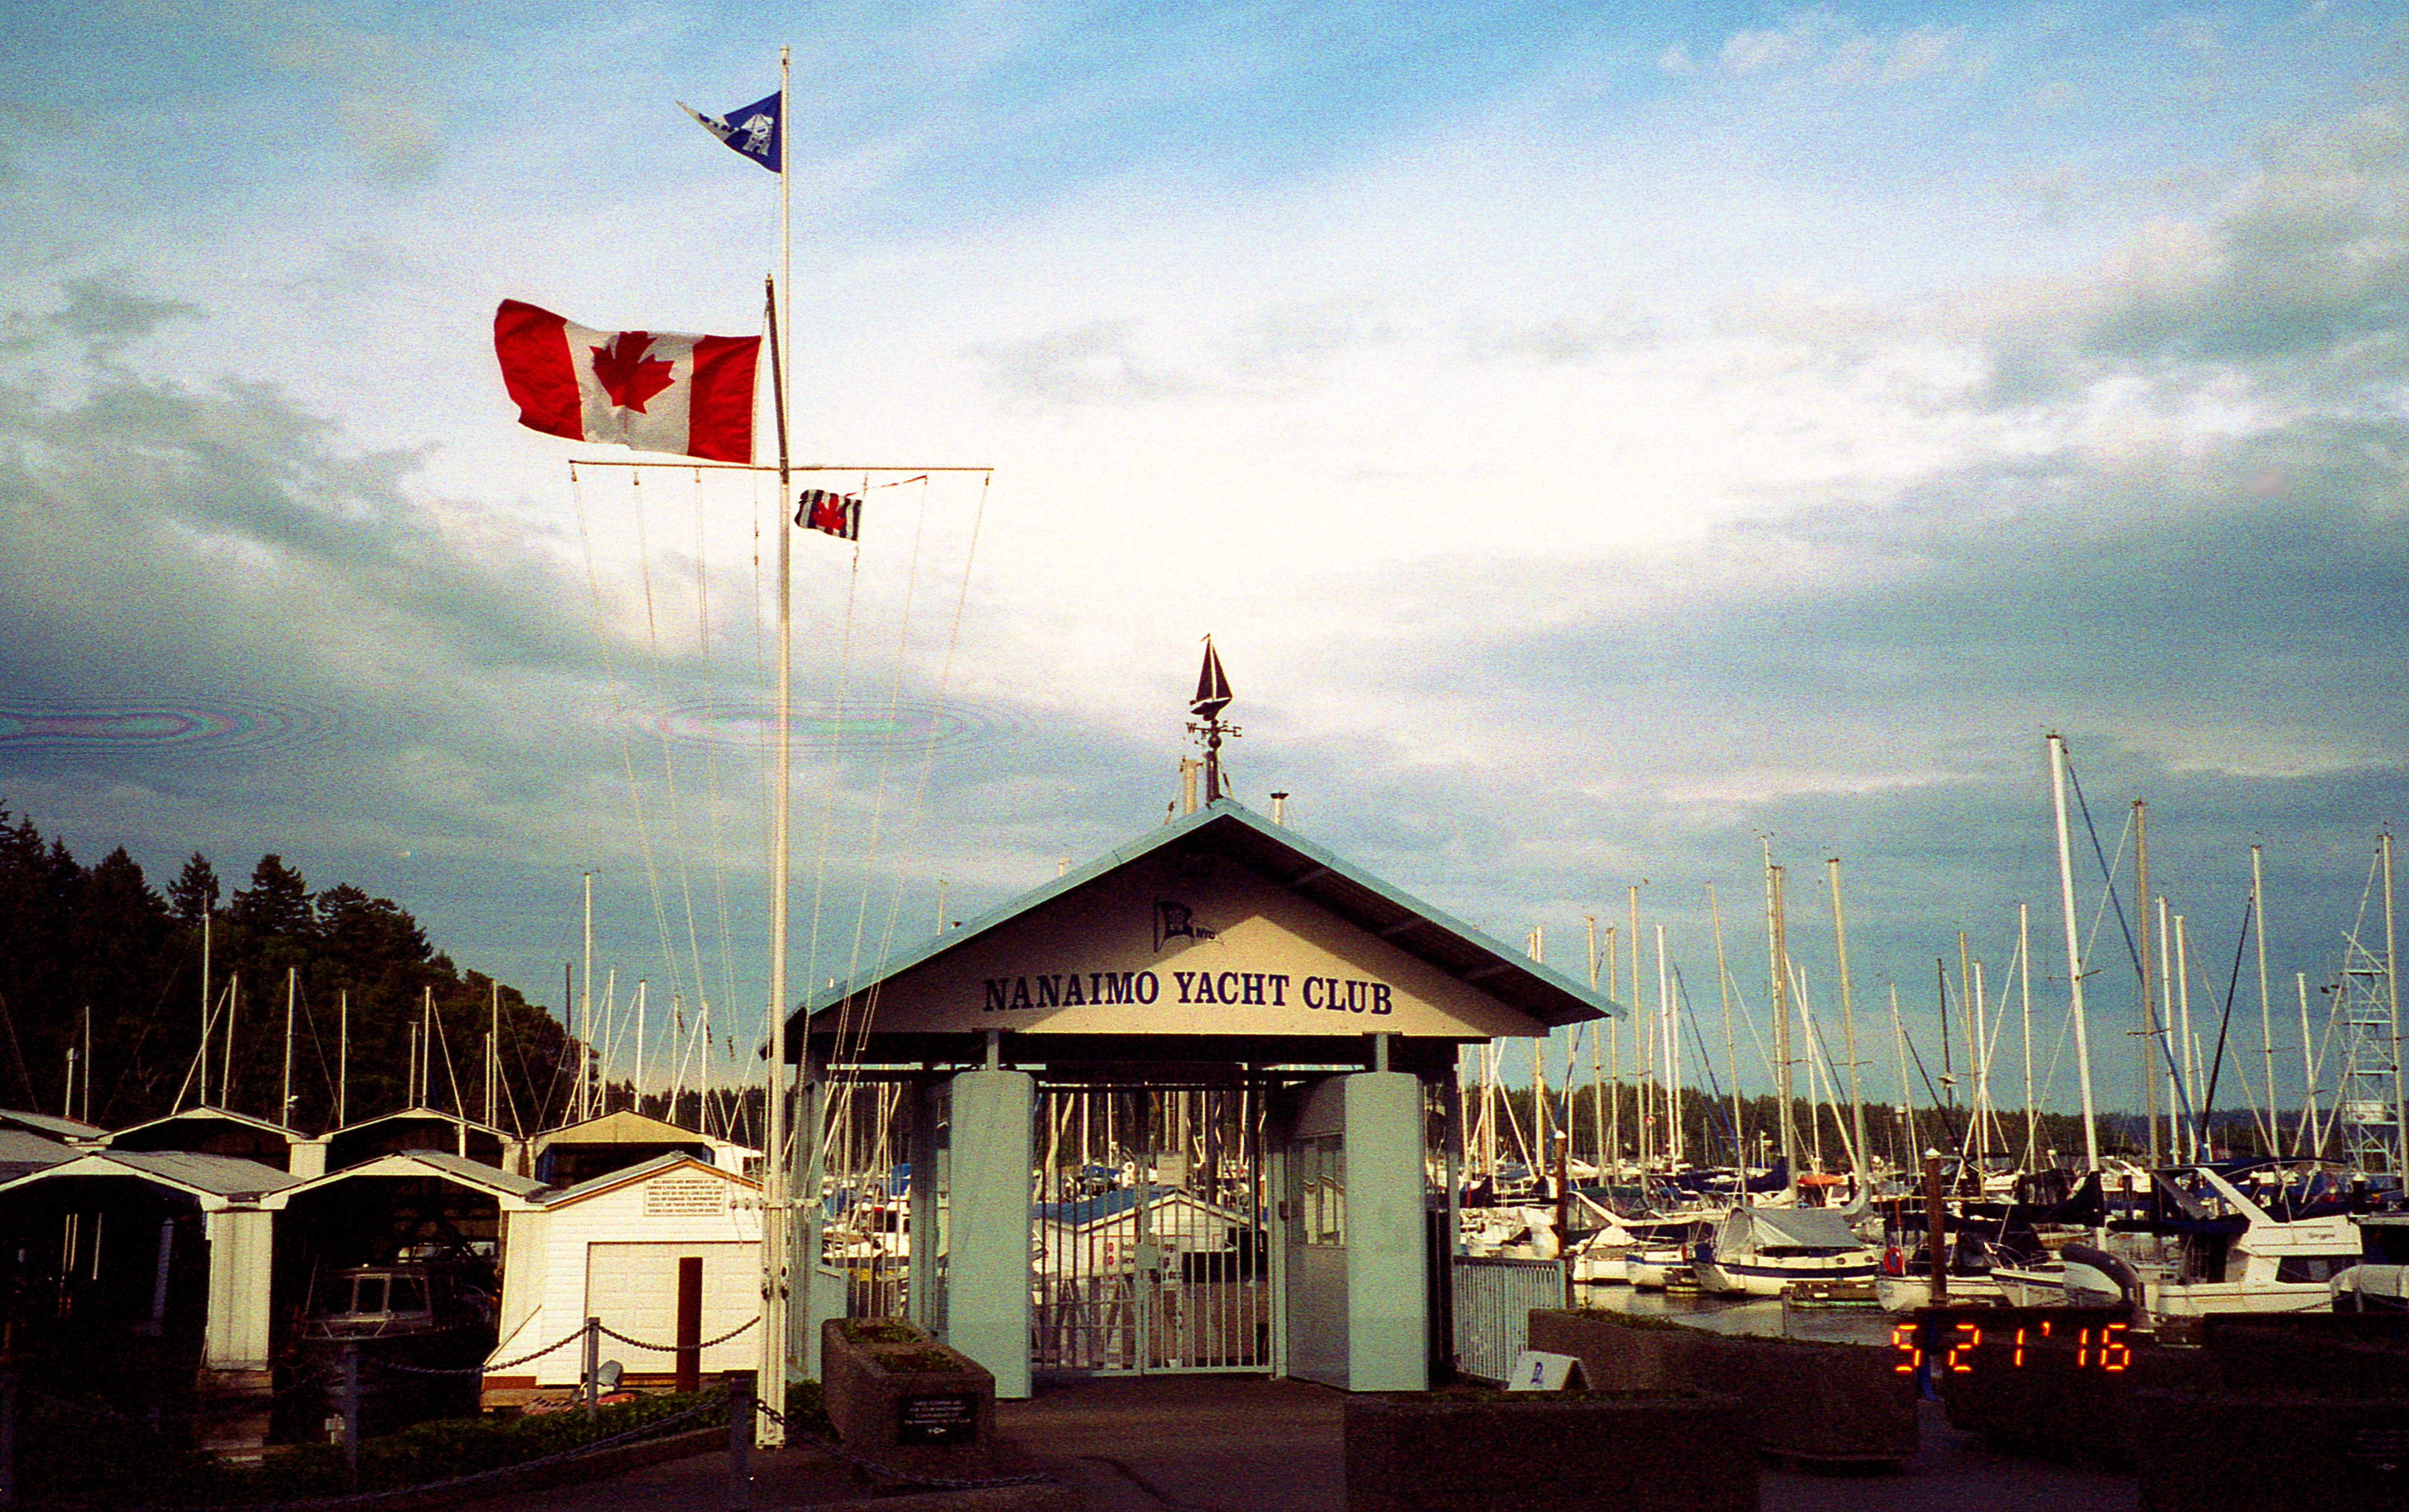 Nanaimo Yacht Club - 2 (of 2) - Konica Z-up 80 Super Zoom (1988) with 9-year expired Kodak ISO 200 Film (Expired 2007)